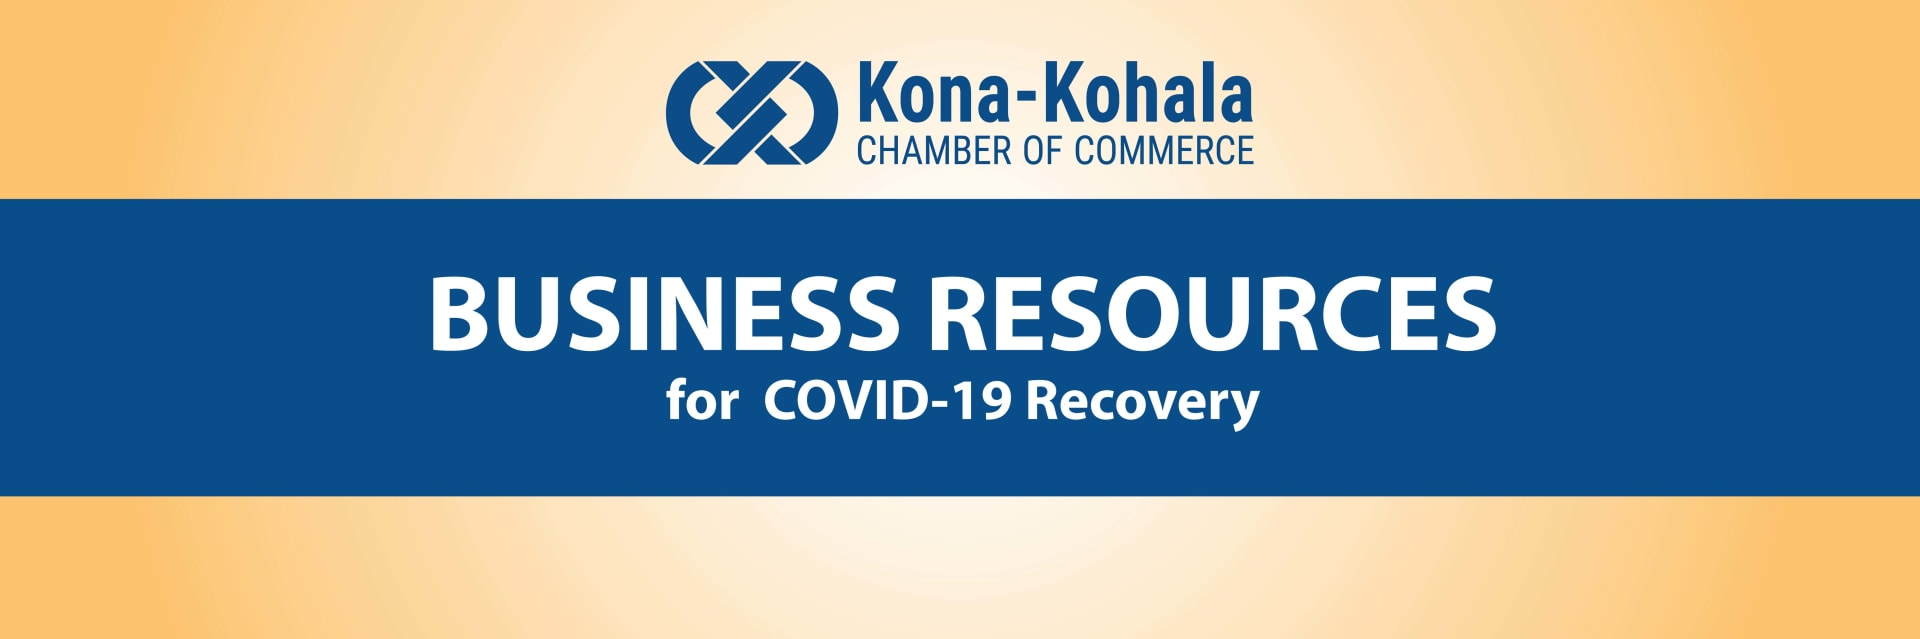 Business-Resources-for-Recovery-2-w1920.jpg